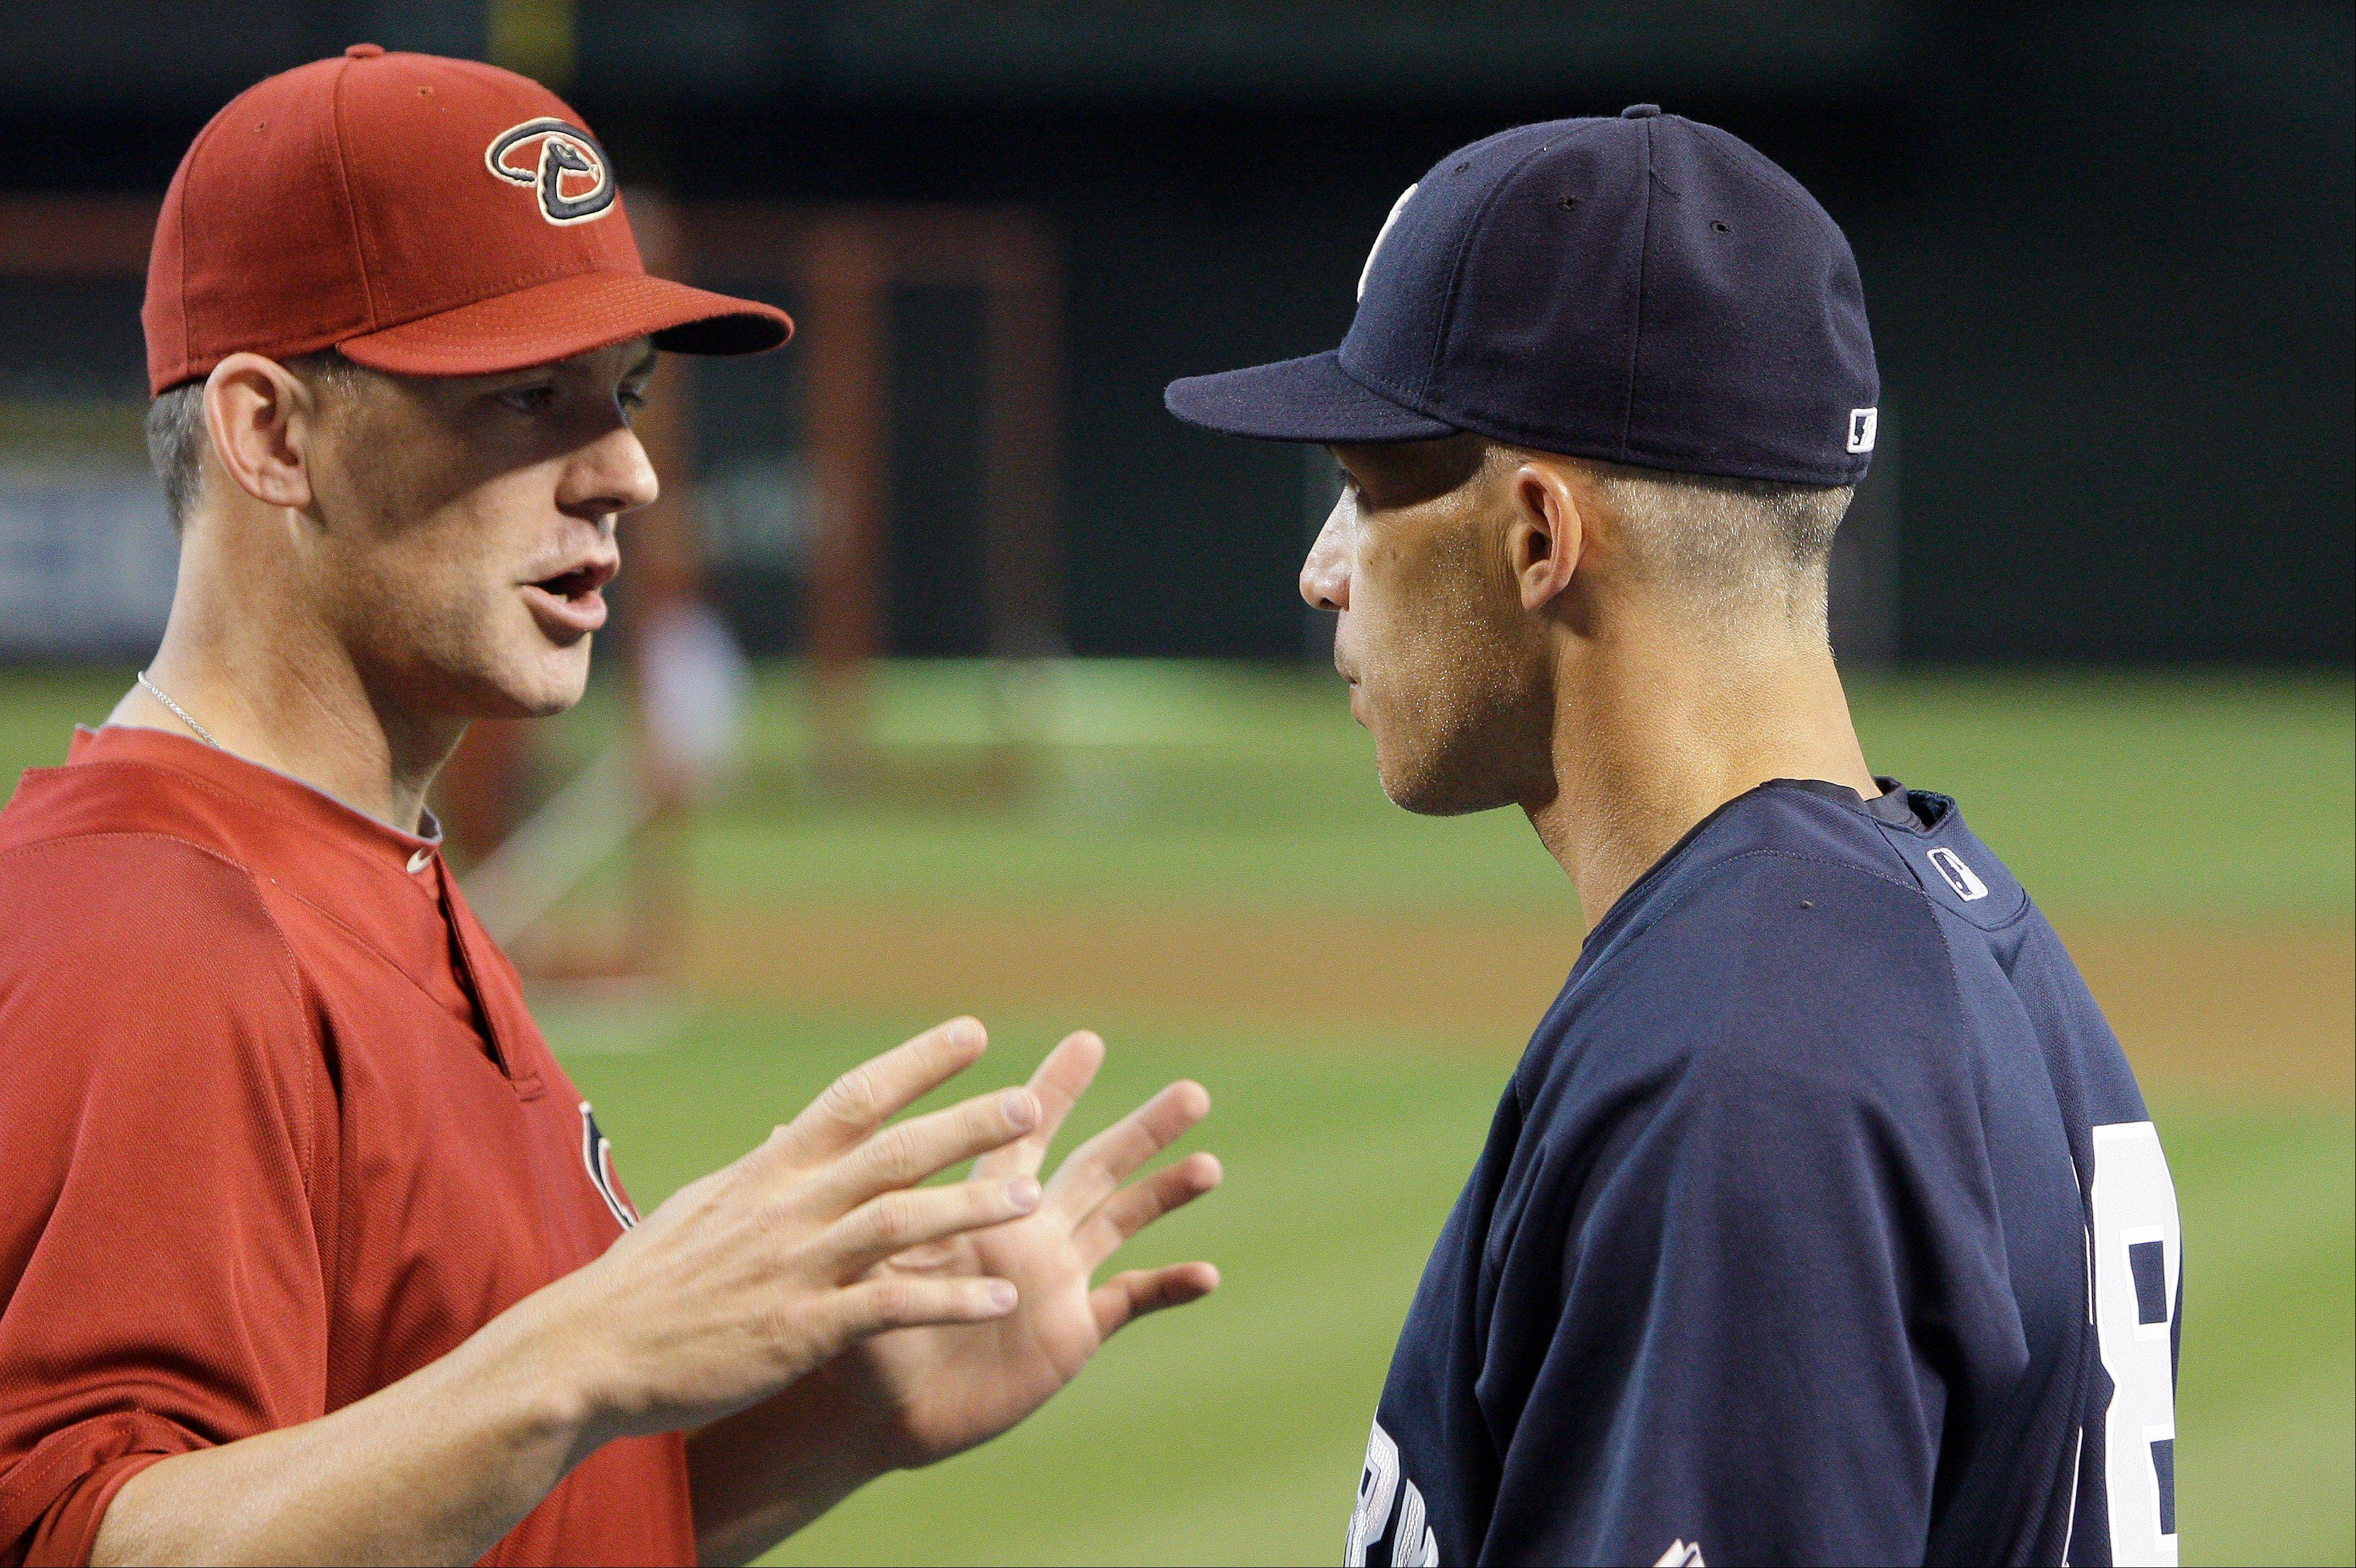 Two possible contenders for the Cubs managerial job, former Arizona Diamondbacks manager A.J. Hinch, left, and New York Yankees manager Joe Girardi, had a pregame talk in Phoenix before a 2010 game between their clubs.